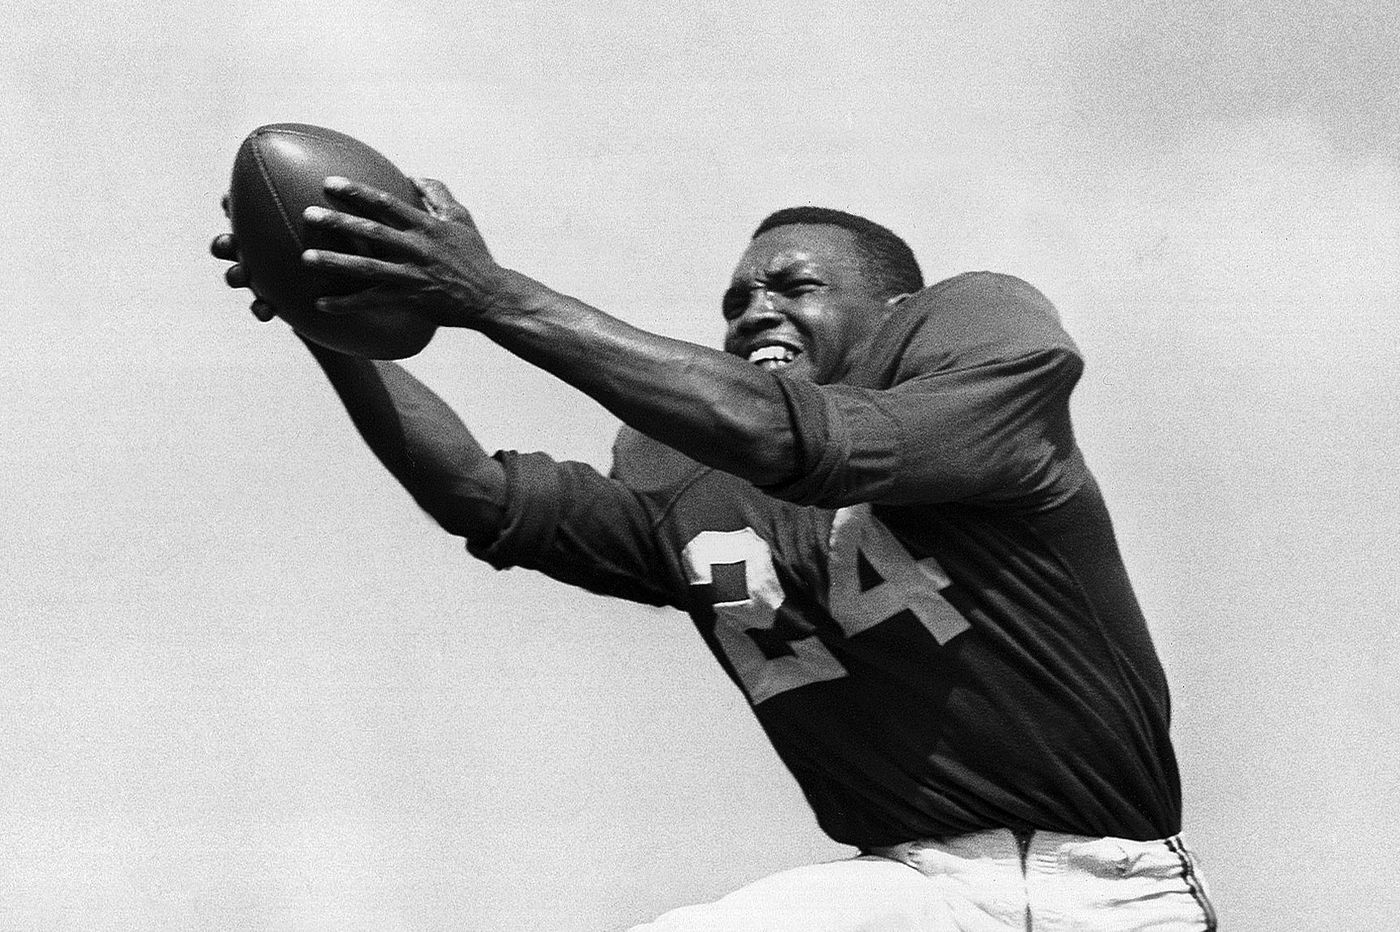 Wally Triplett (1926 - 2018), pioneering National Football League  running back